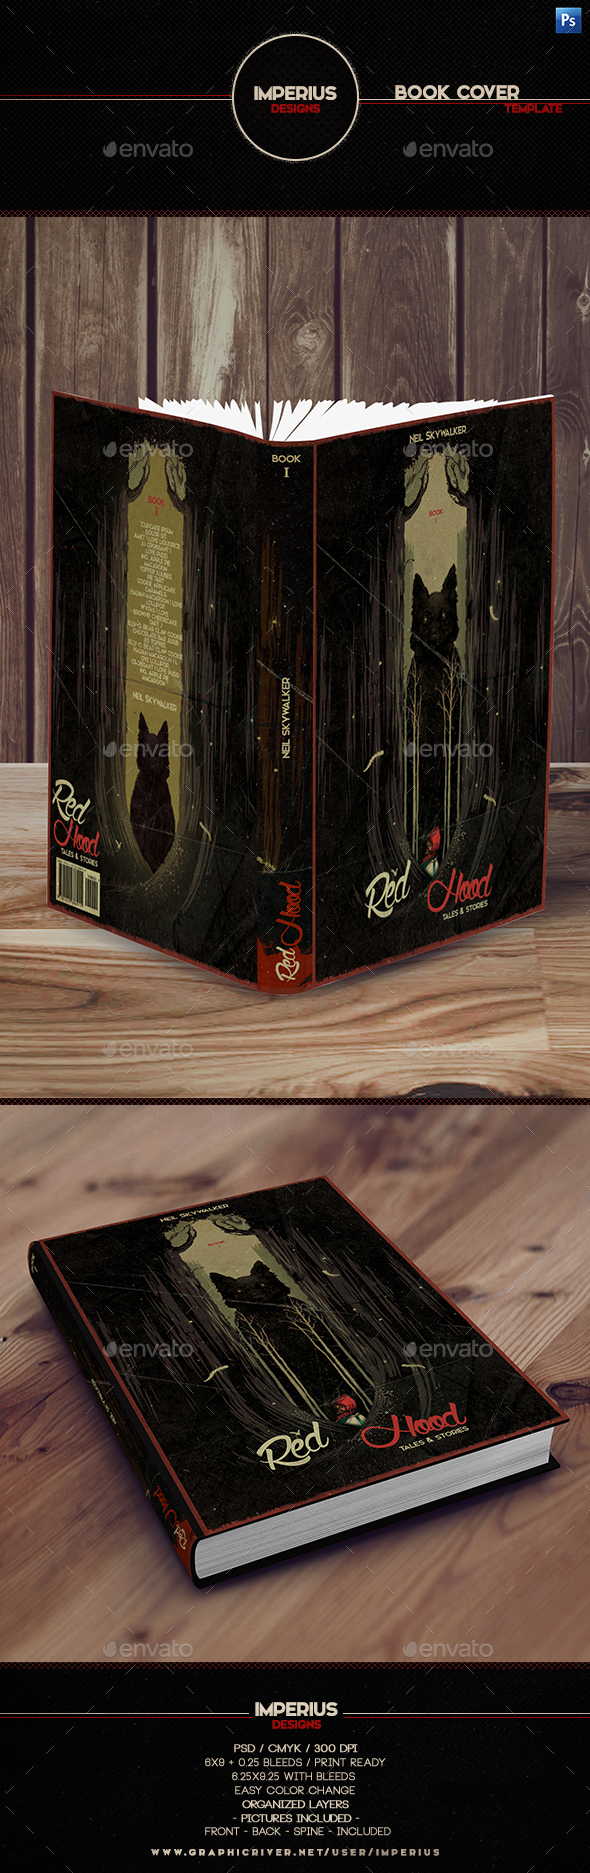 Red Hood Book Cover - Miscellaneous Print Templates